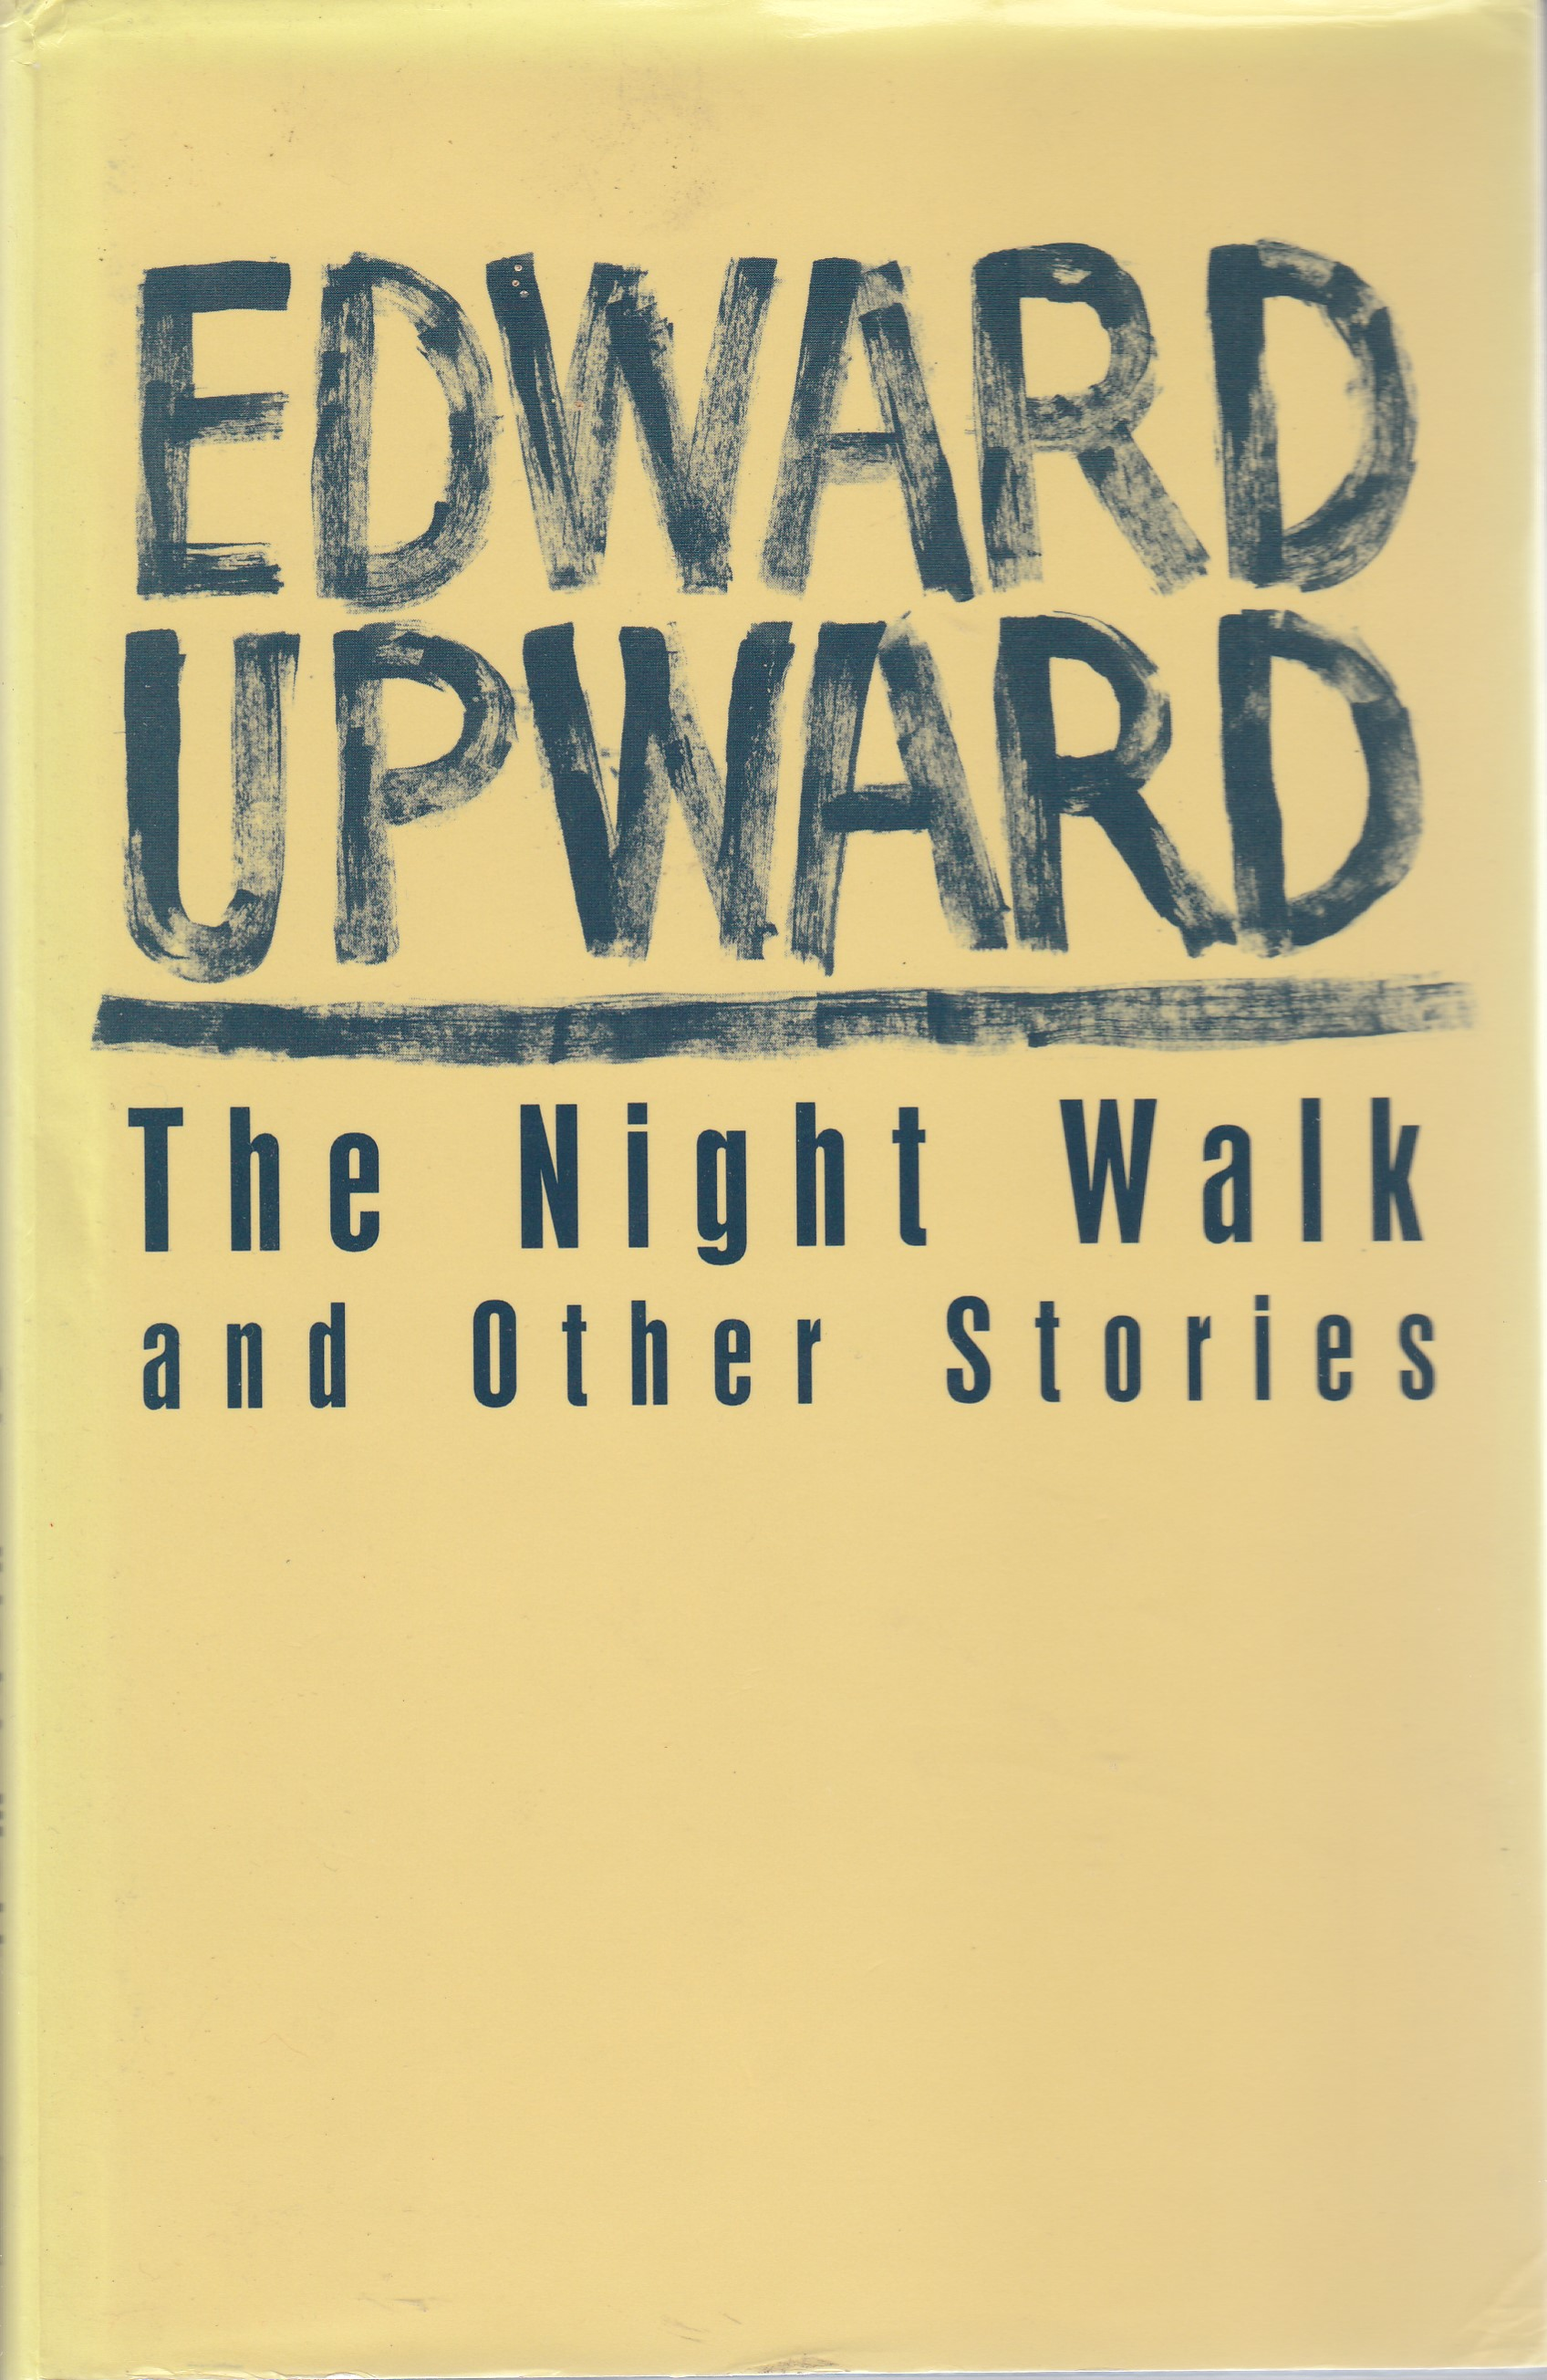 The Night Walk and Other Stories